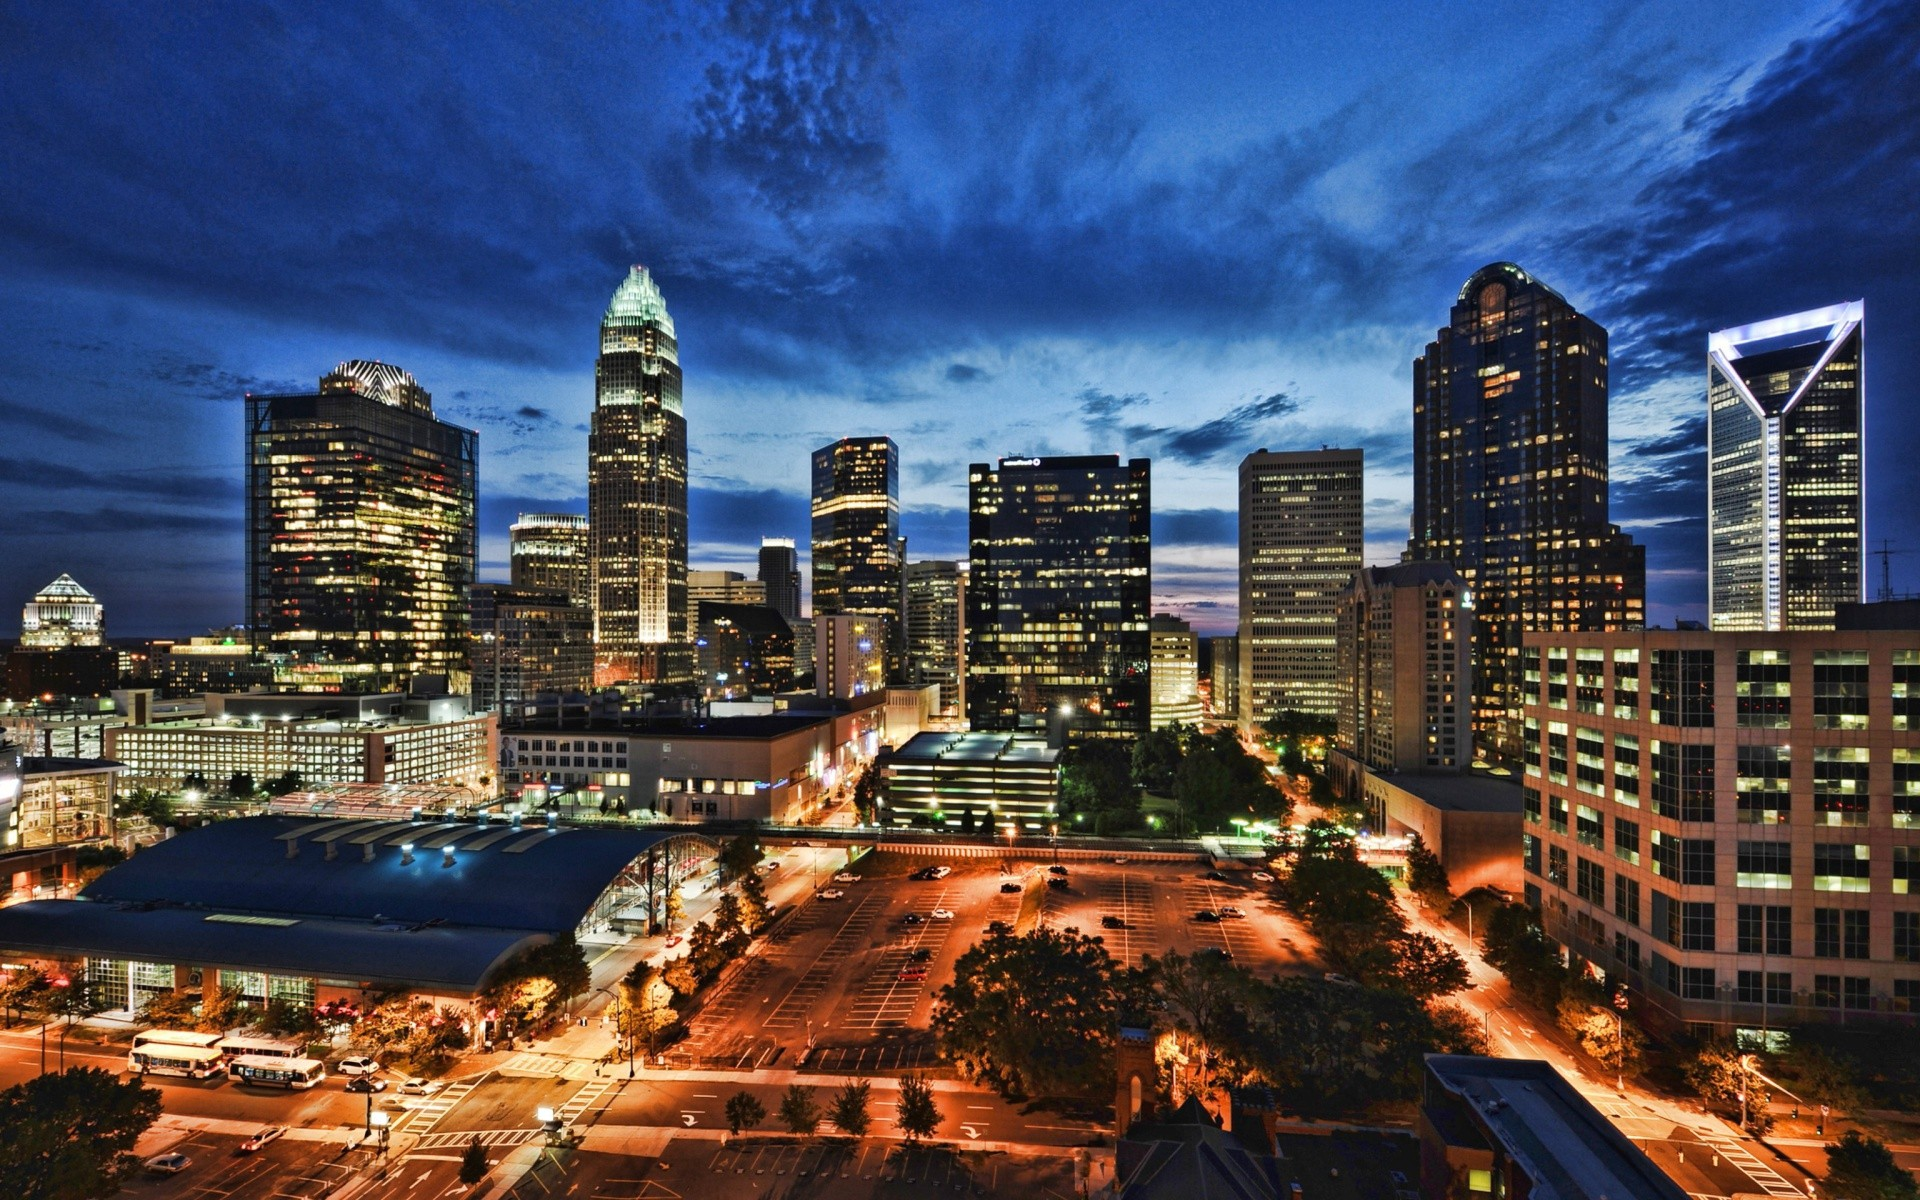 Charlotte wallpaper download free cool high resolution - Nc state iphone 5 wallpaper ...